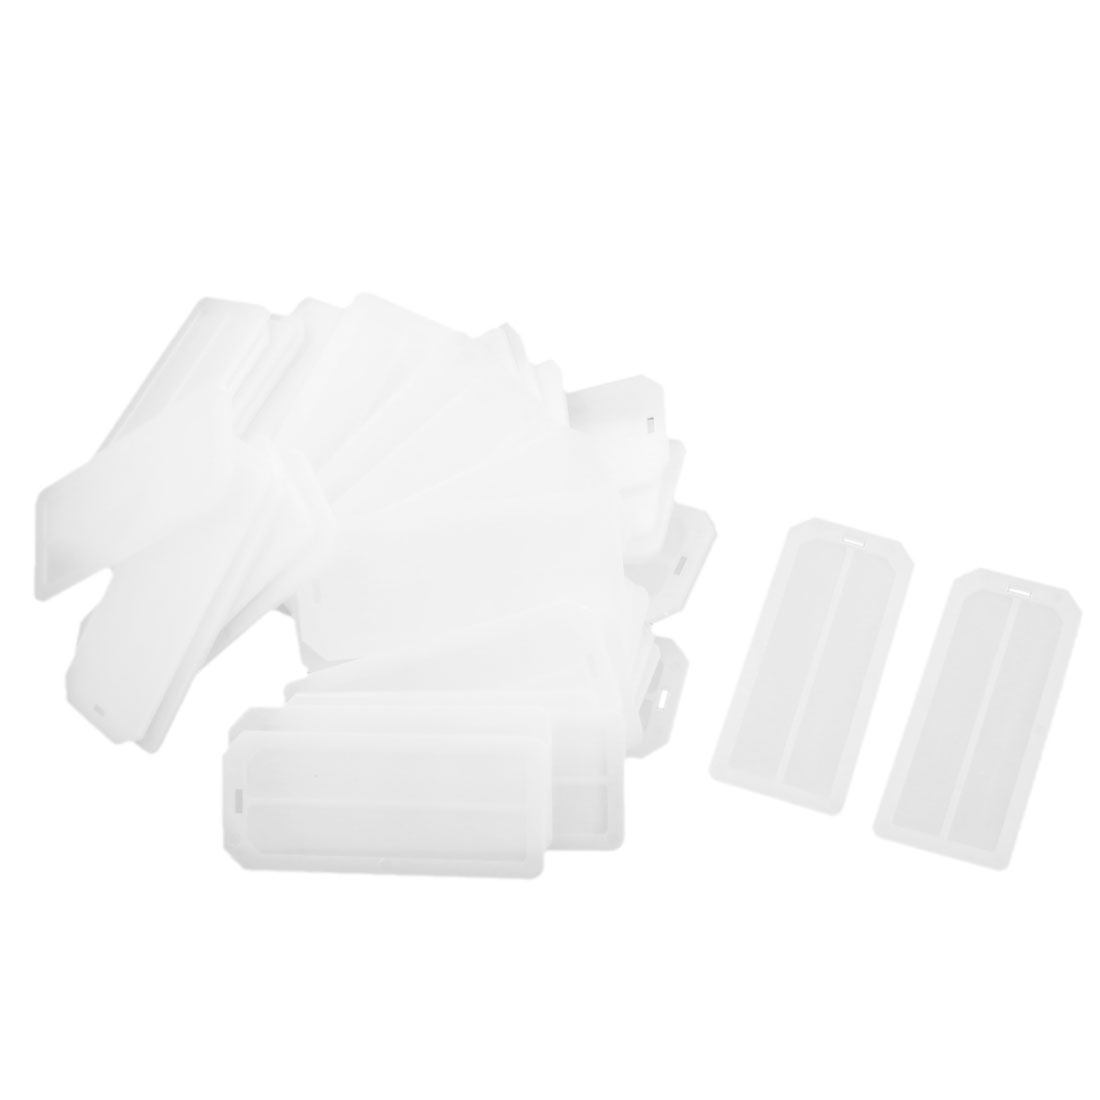 50 Pcs Rectangular White Plastic Blank Wire Cable Marker Plate Swing Tag Label Identifier 72mm x 31mm